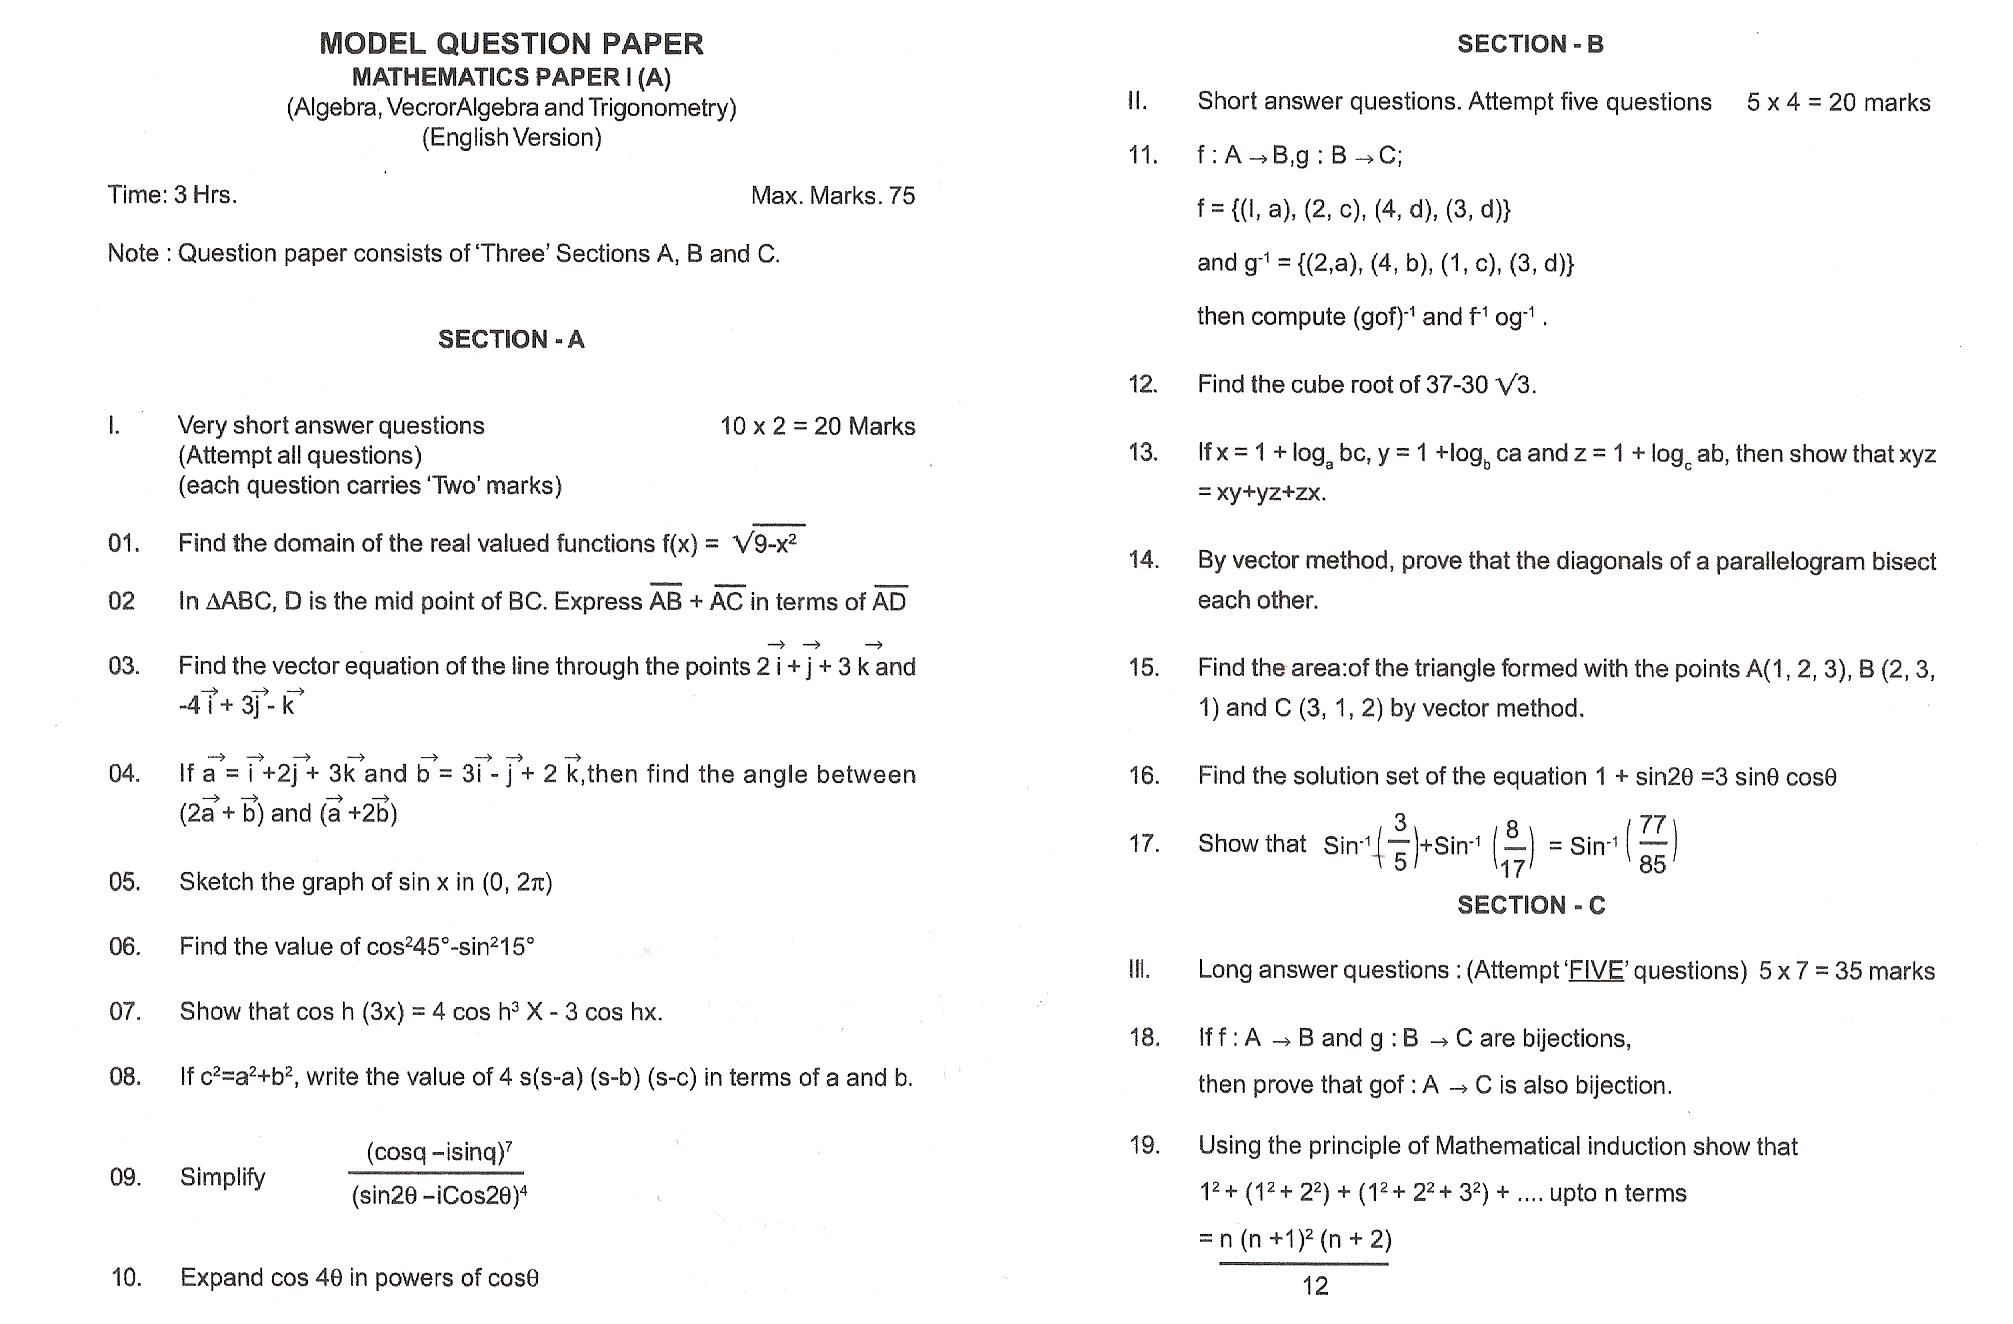 Andhra pradesh state mathematics i a state syllabus intermediate side 2 download return to question paper search malvernweather Images